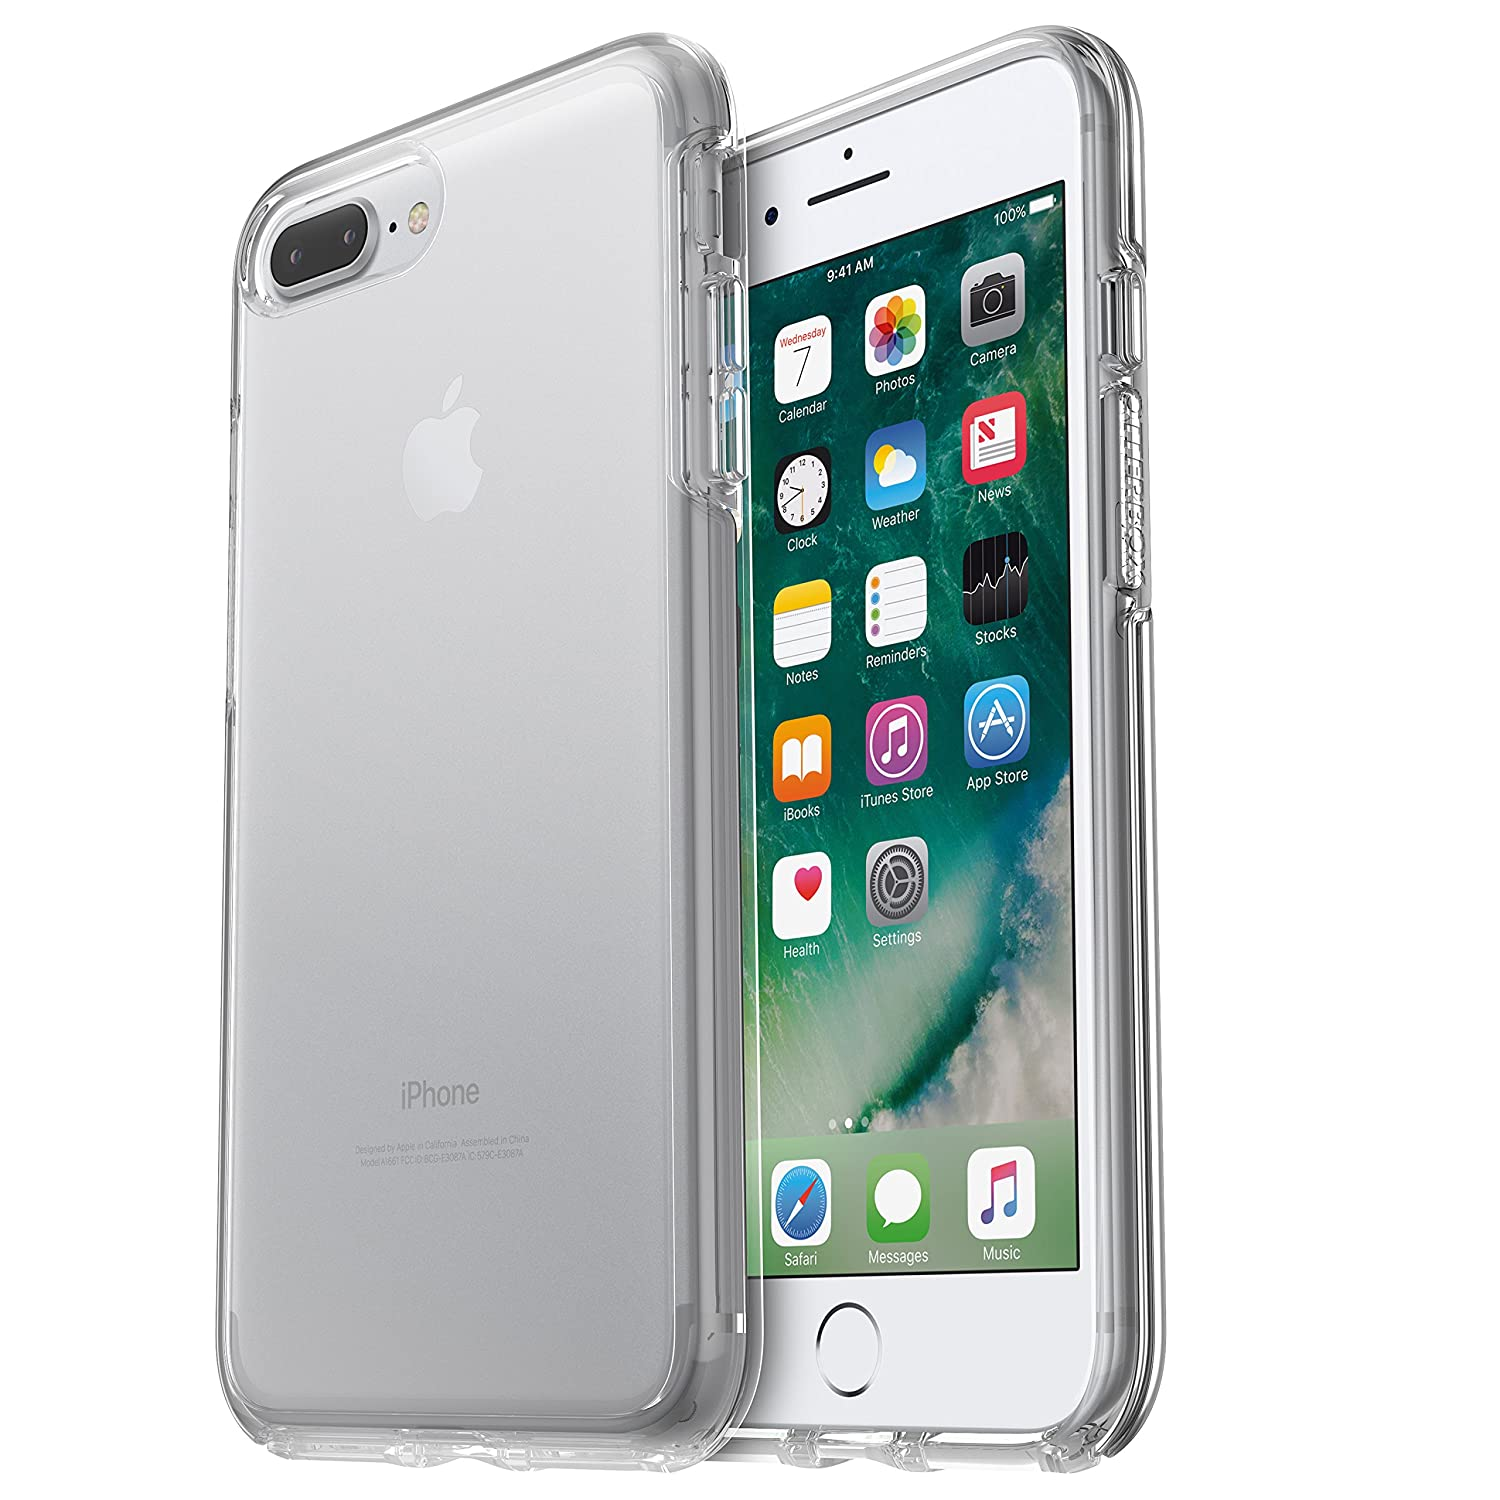 558266f35208b5 Amazon.com: OtterBox SYMMETRY CLEAR SERIES Case for iPhone 7 Plus (ONLY) -  Retail Packaging - CLEAR (CLEAR/CLEAR): Cell Phones & Accessories